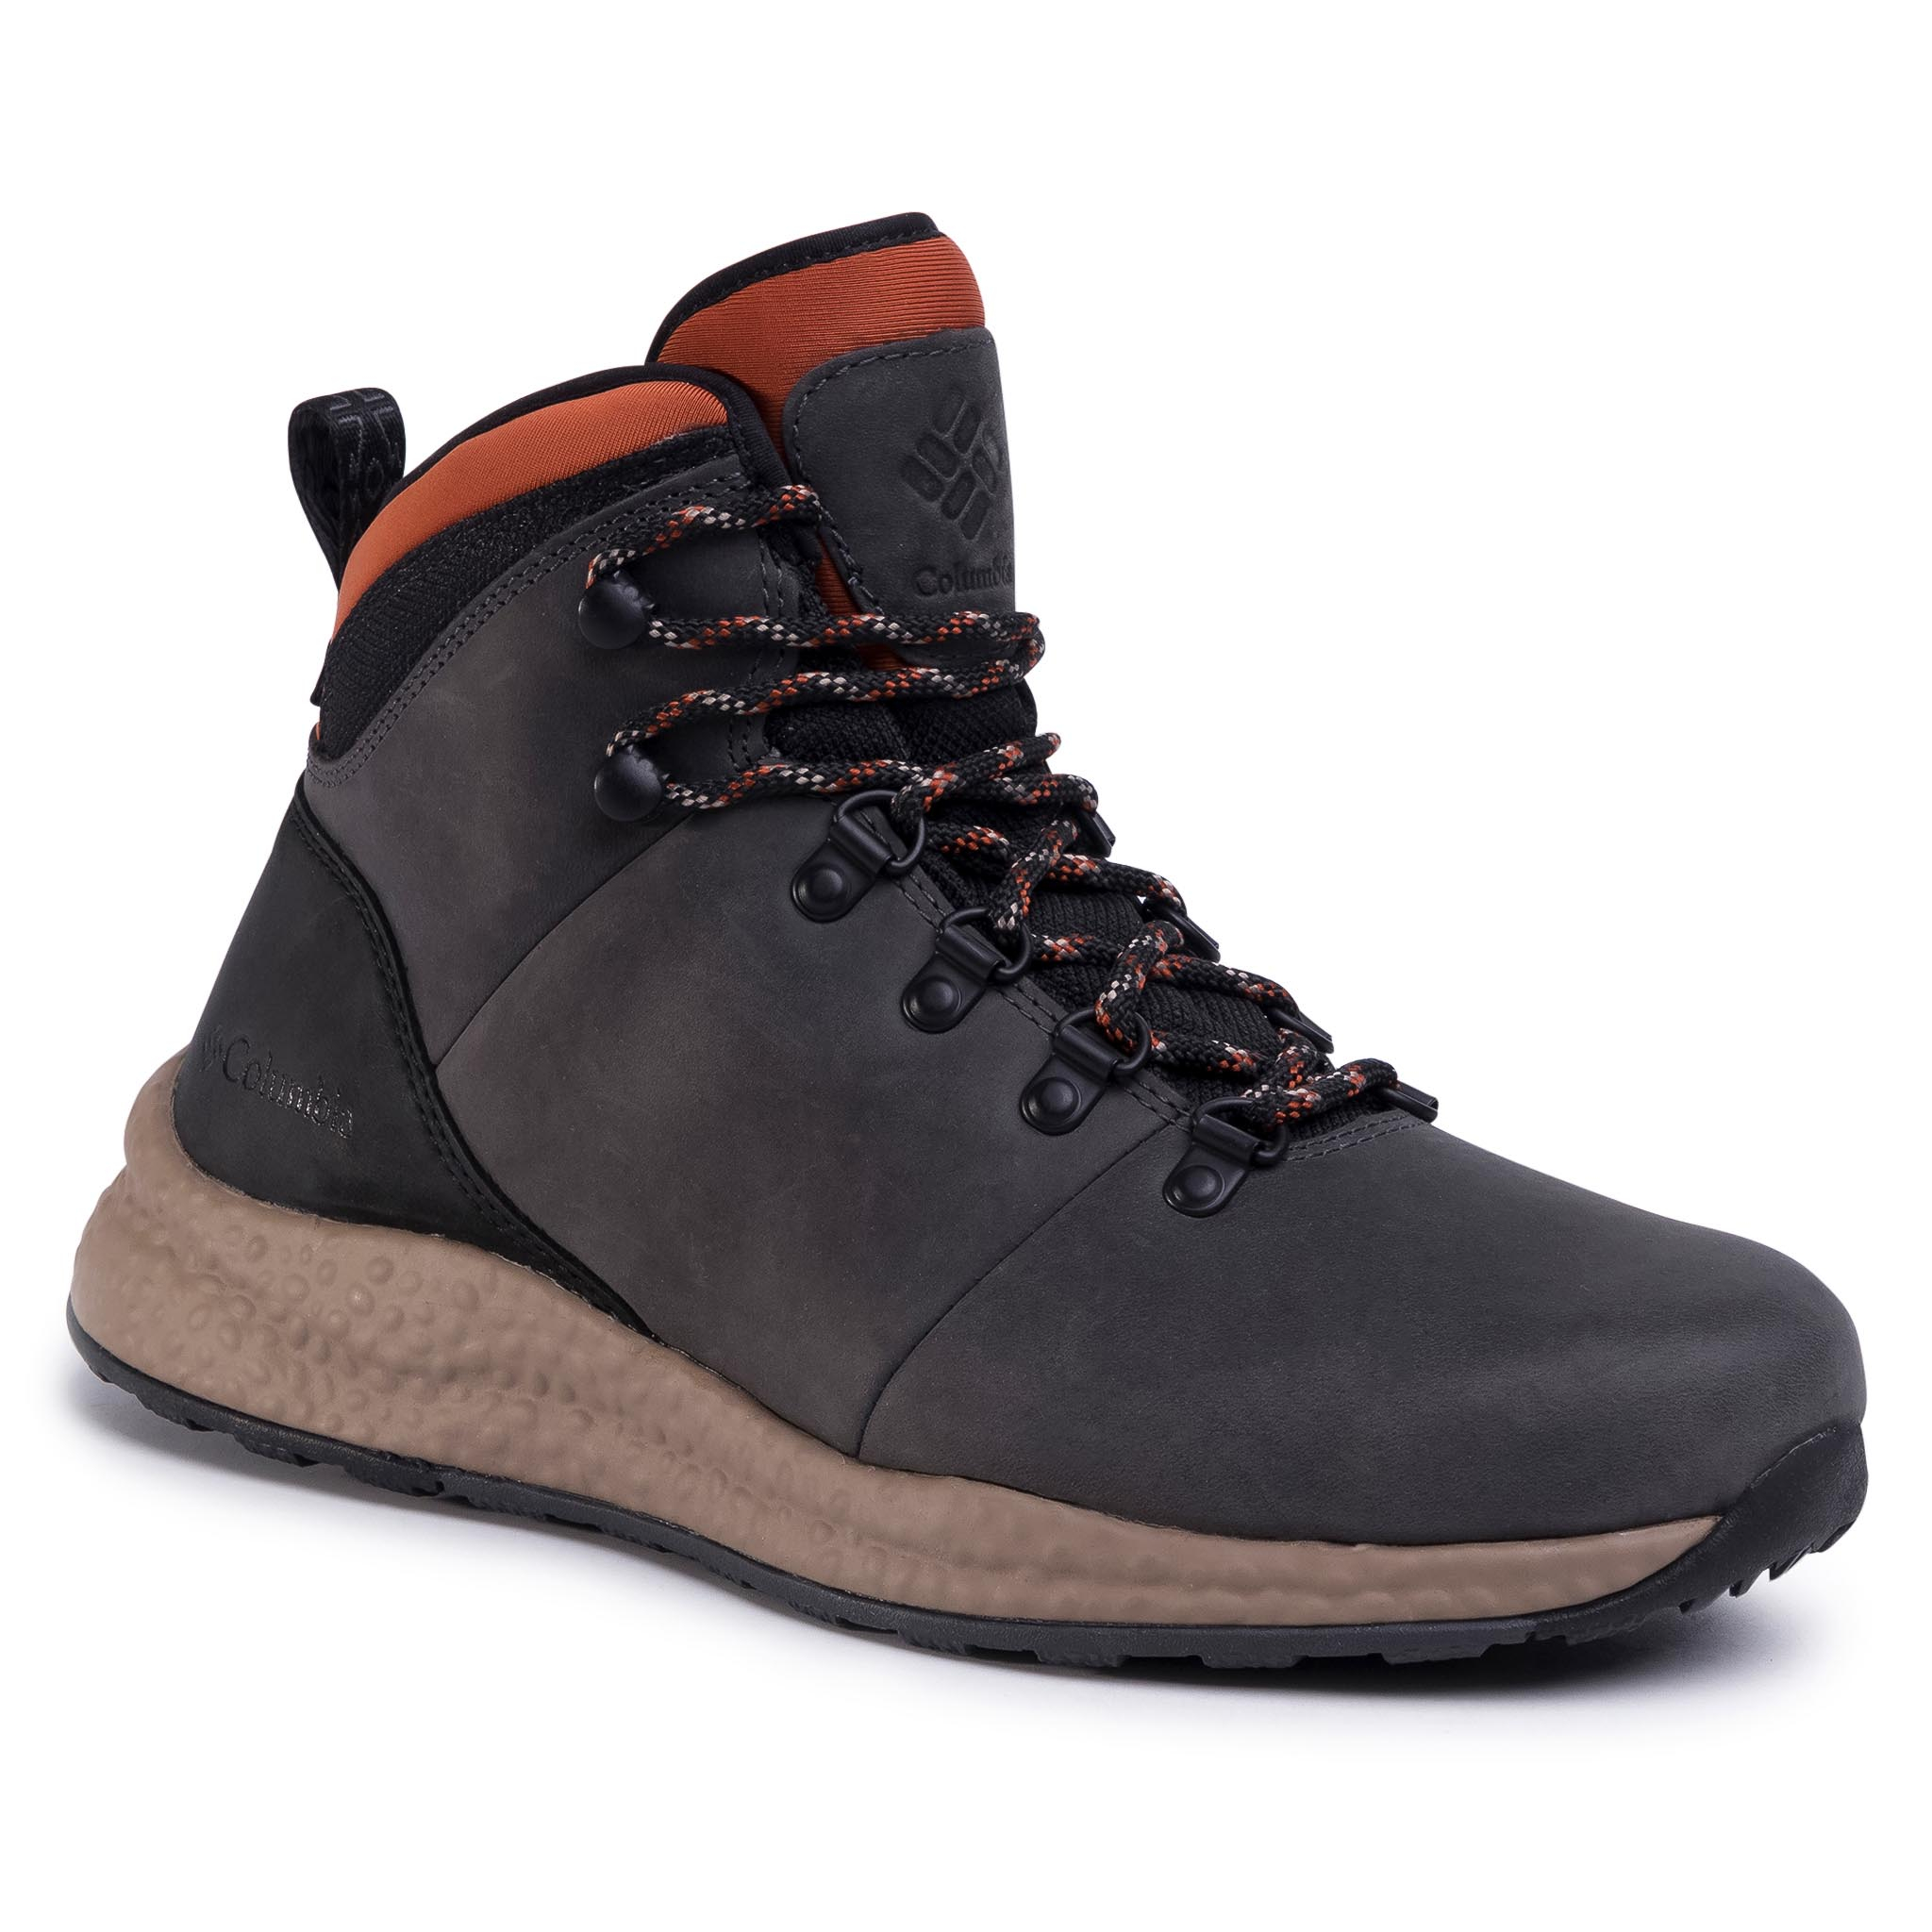 Trekkings Columbia - Sh/Ft Wp Hiker Bm0818 Dark Grey/Dark Adobe 089 imagine epantofi.ro 2021